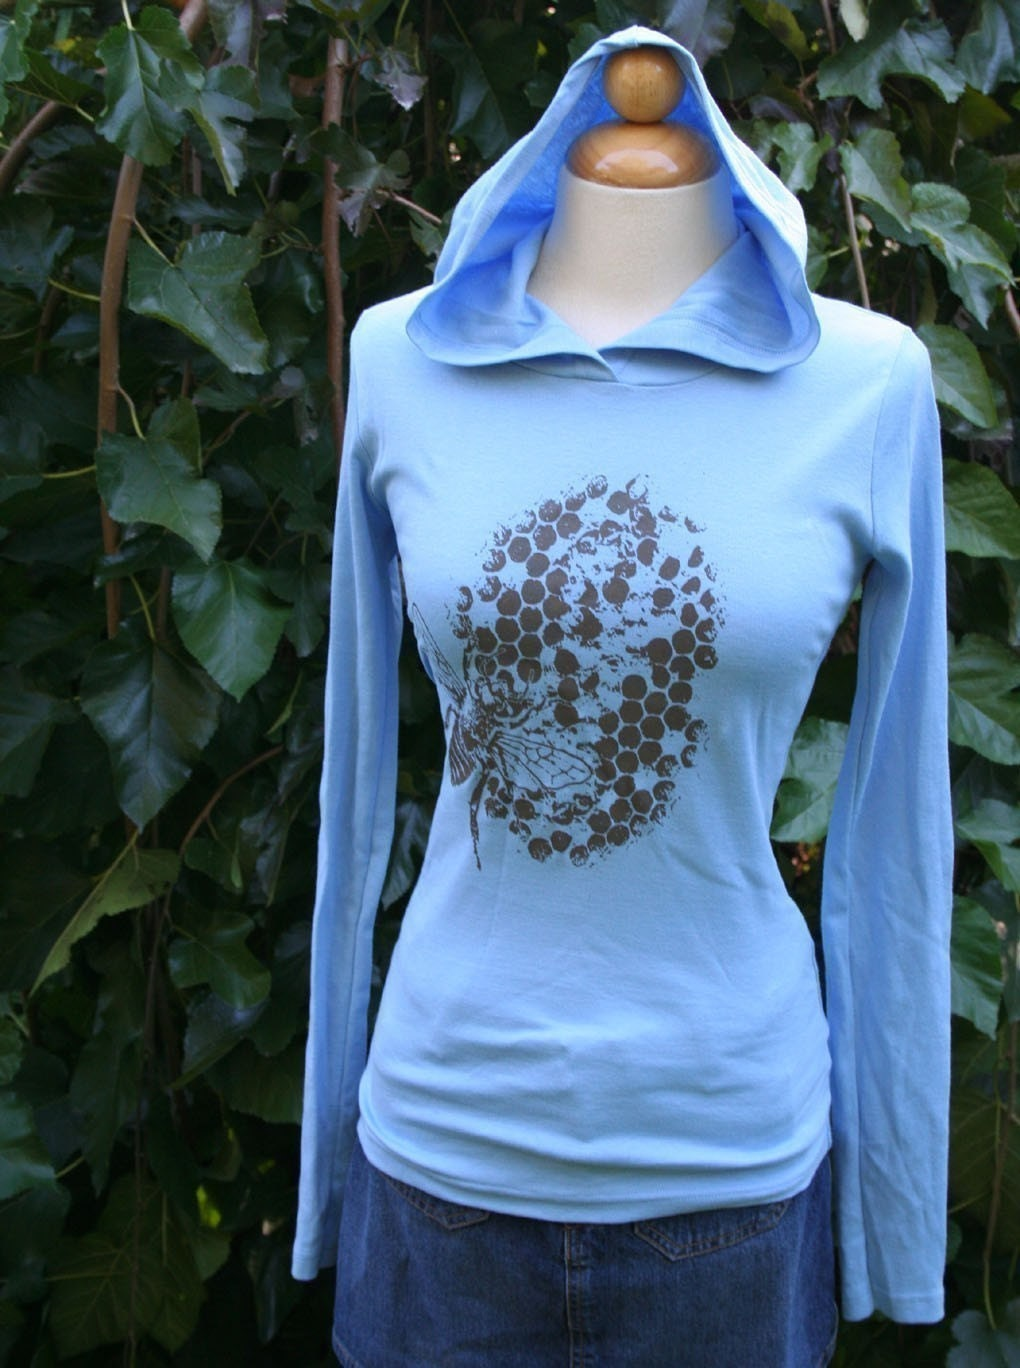 Blue Honey Bee Hoody by circularaccessories on Etsy from etsy.com